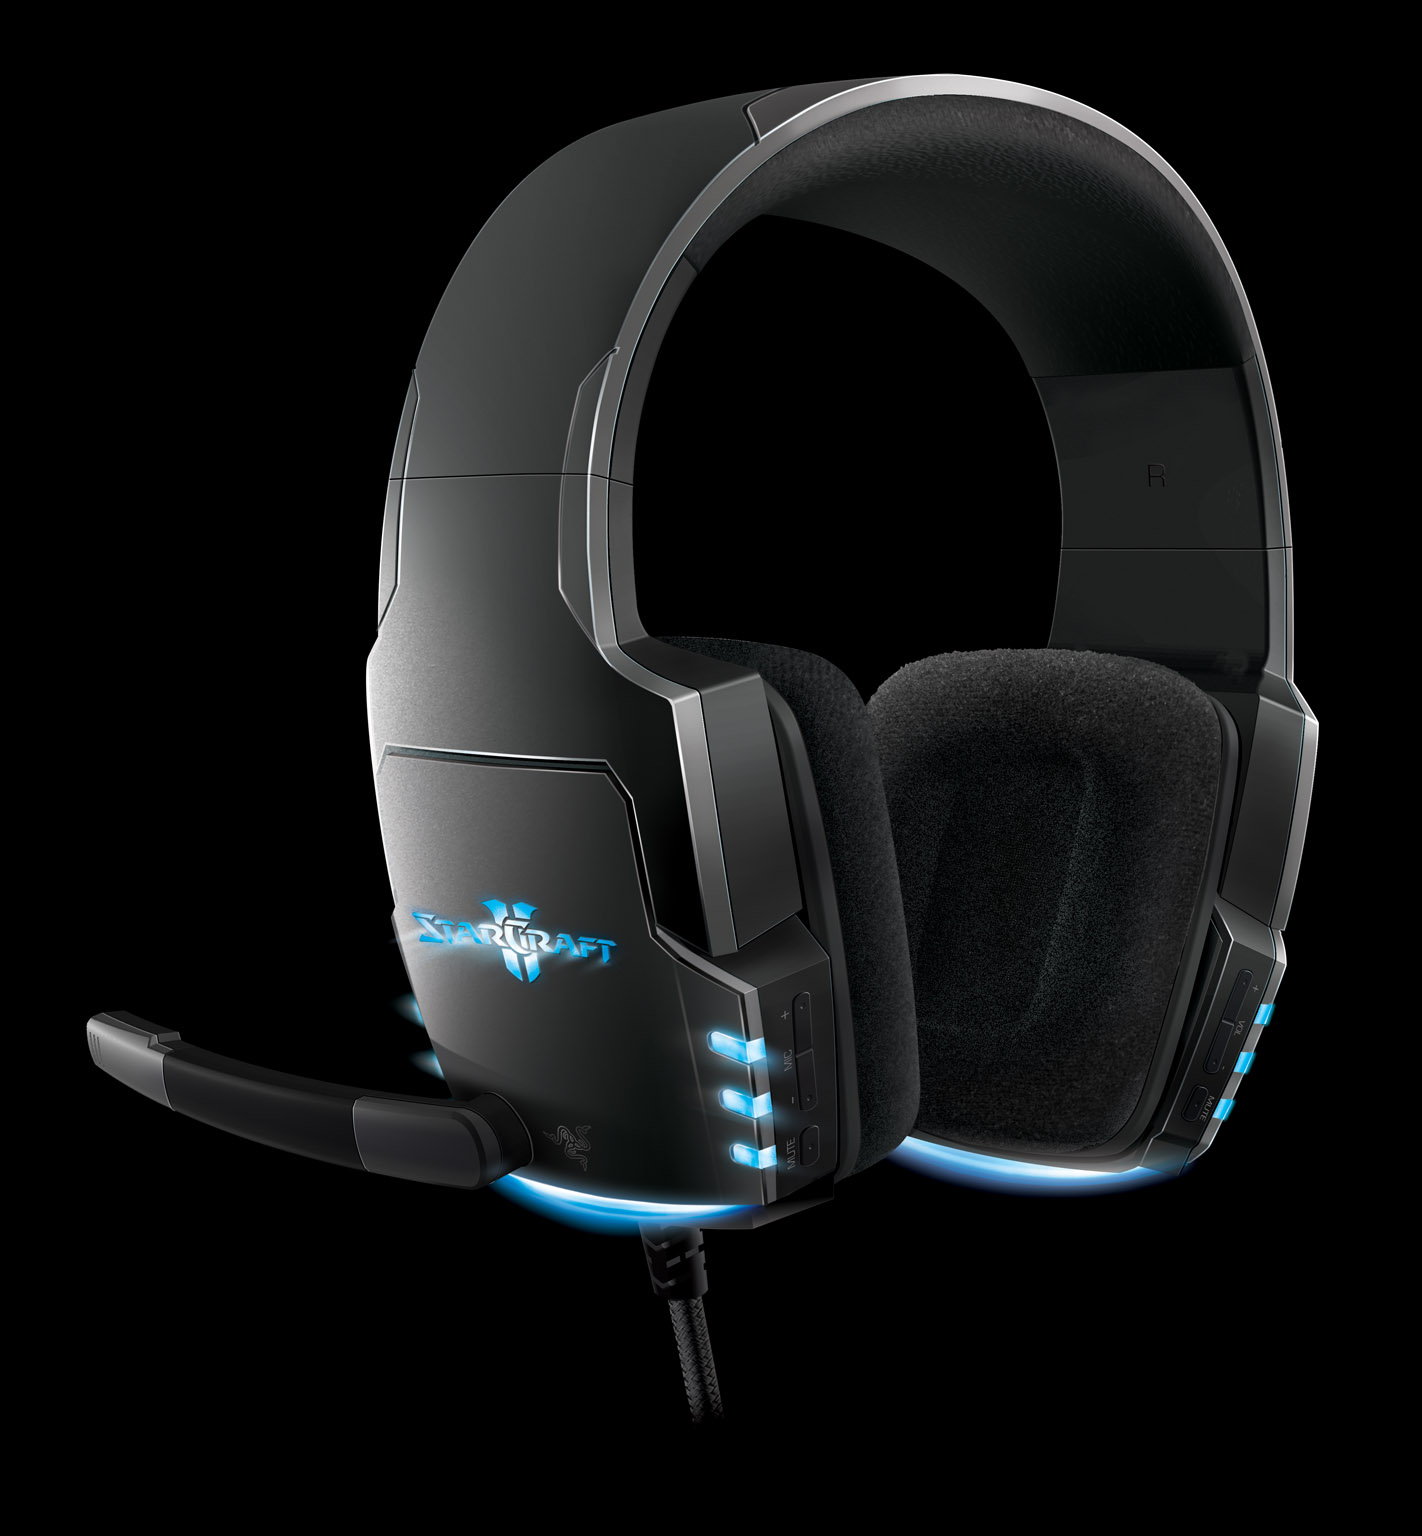 Official Razer Support